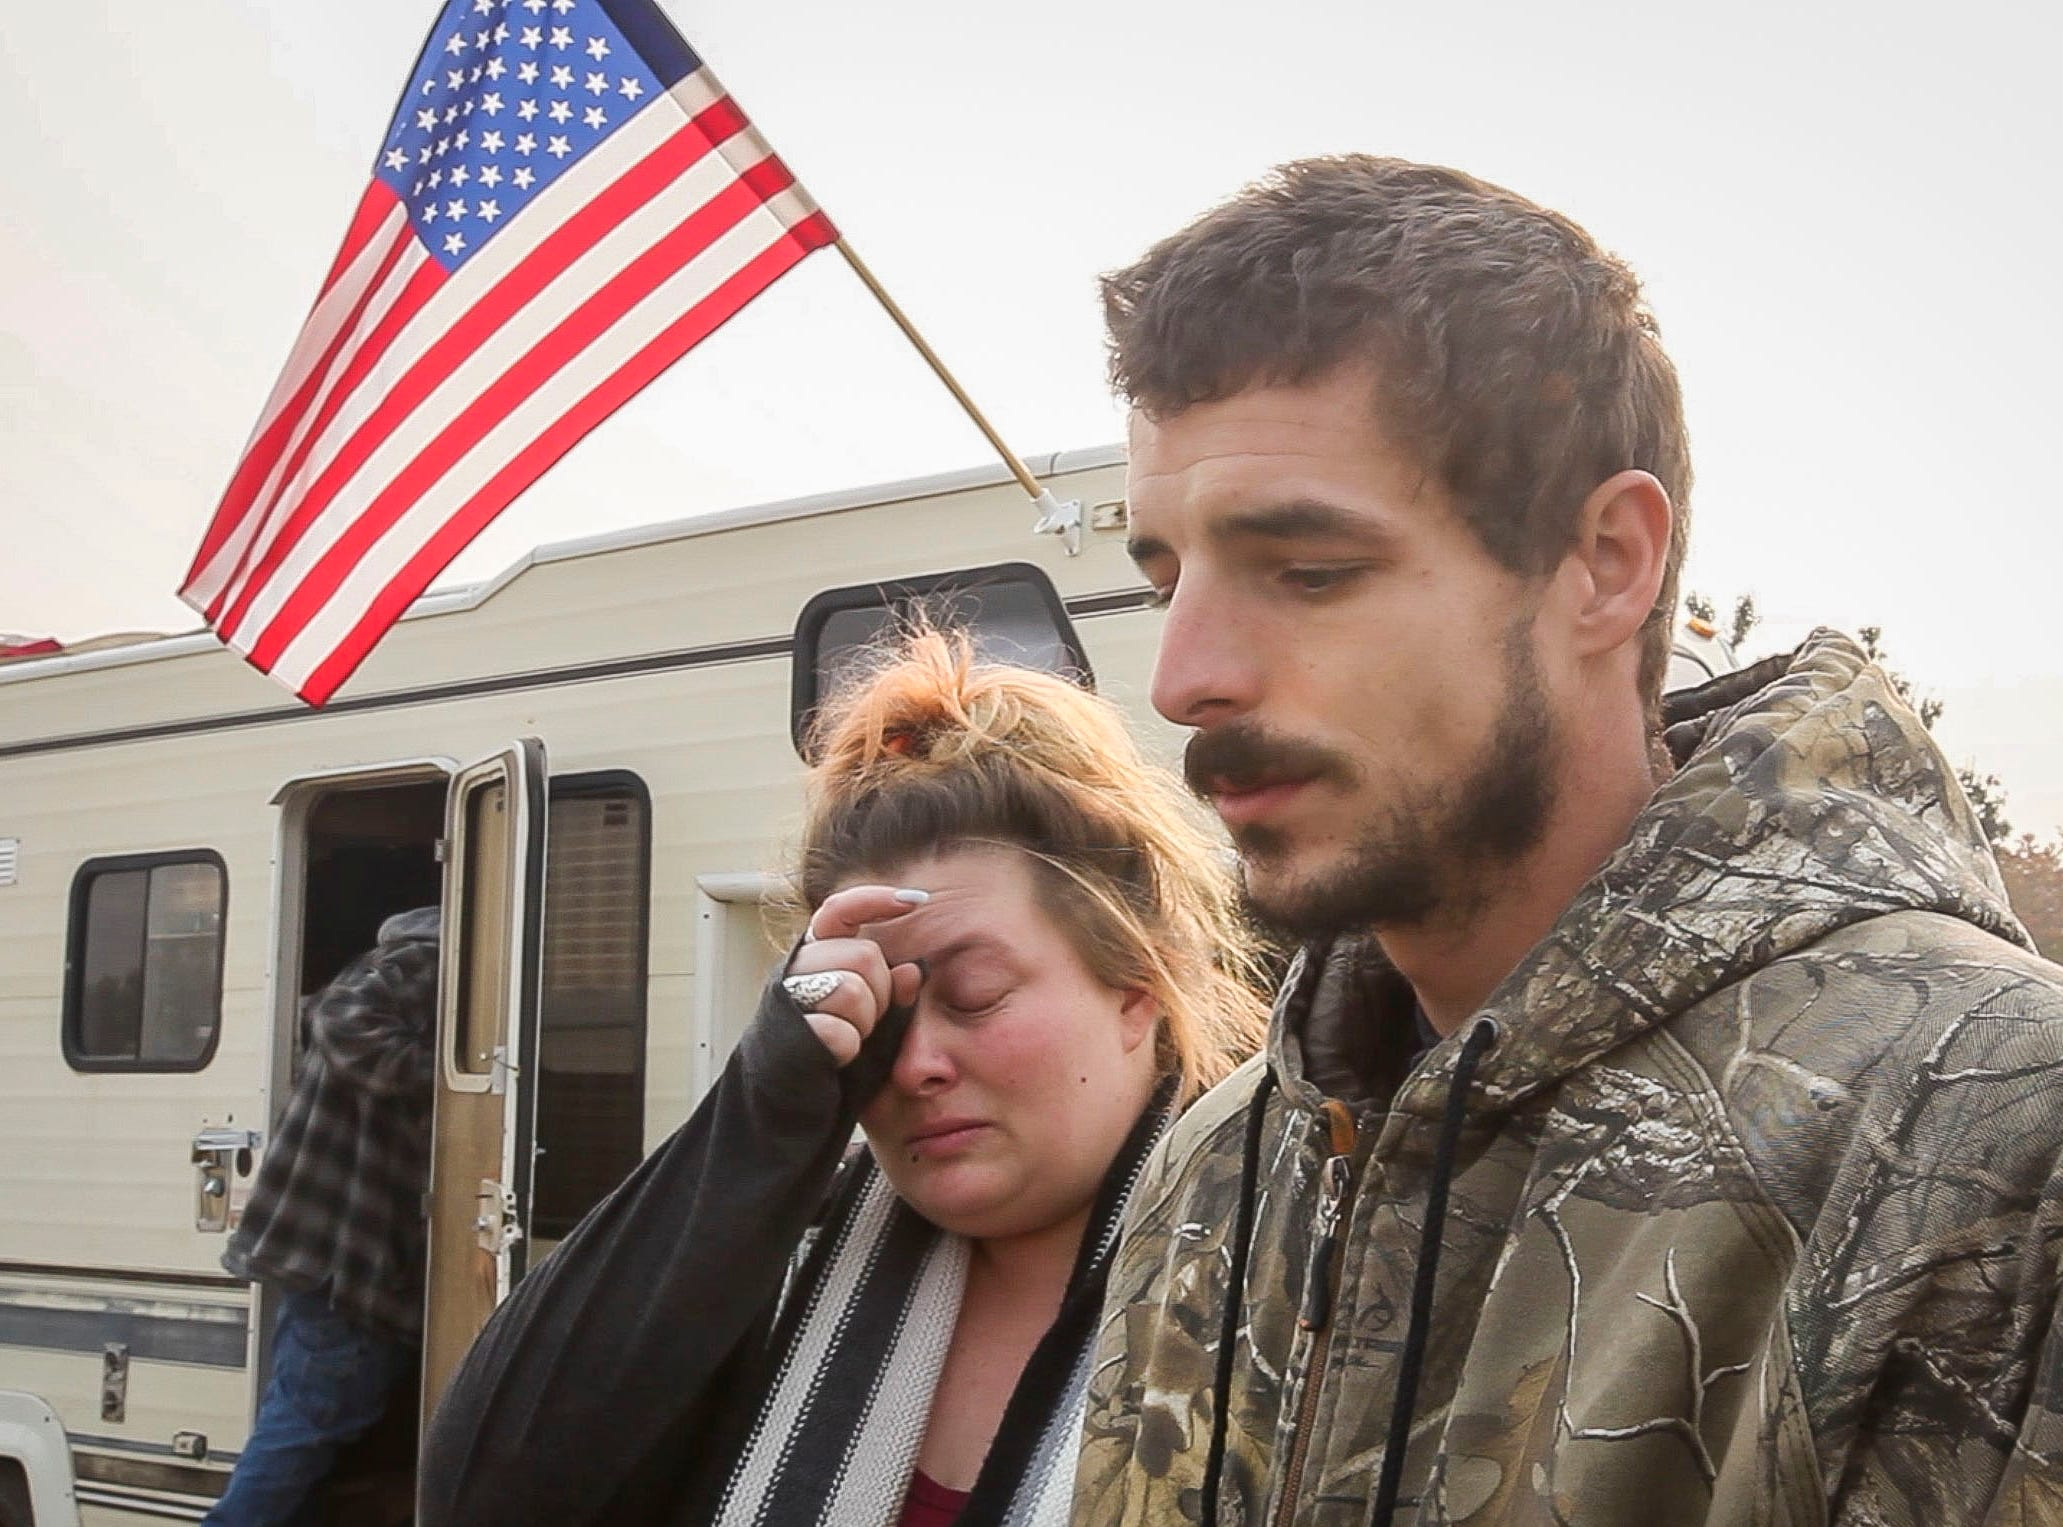 Ryan Belcher, left and his wife Casey sit next to a pick-up truck that Ryan's boss has loaned them. The Belcher family lost their home and vehicles in the Camp Fire. The children sleep in the truck at night and the parents share a small tent in a field next to the Walmart in Chico, CA.